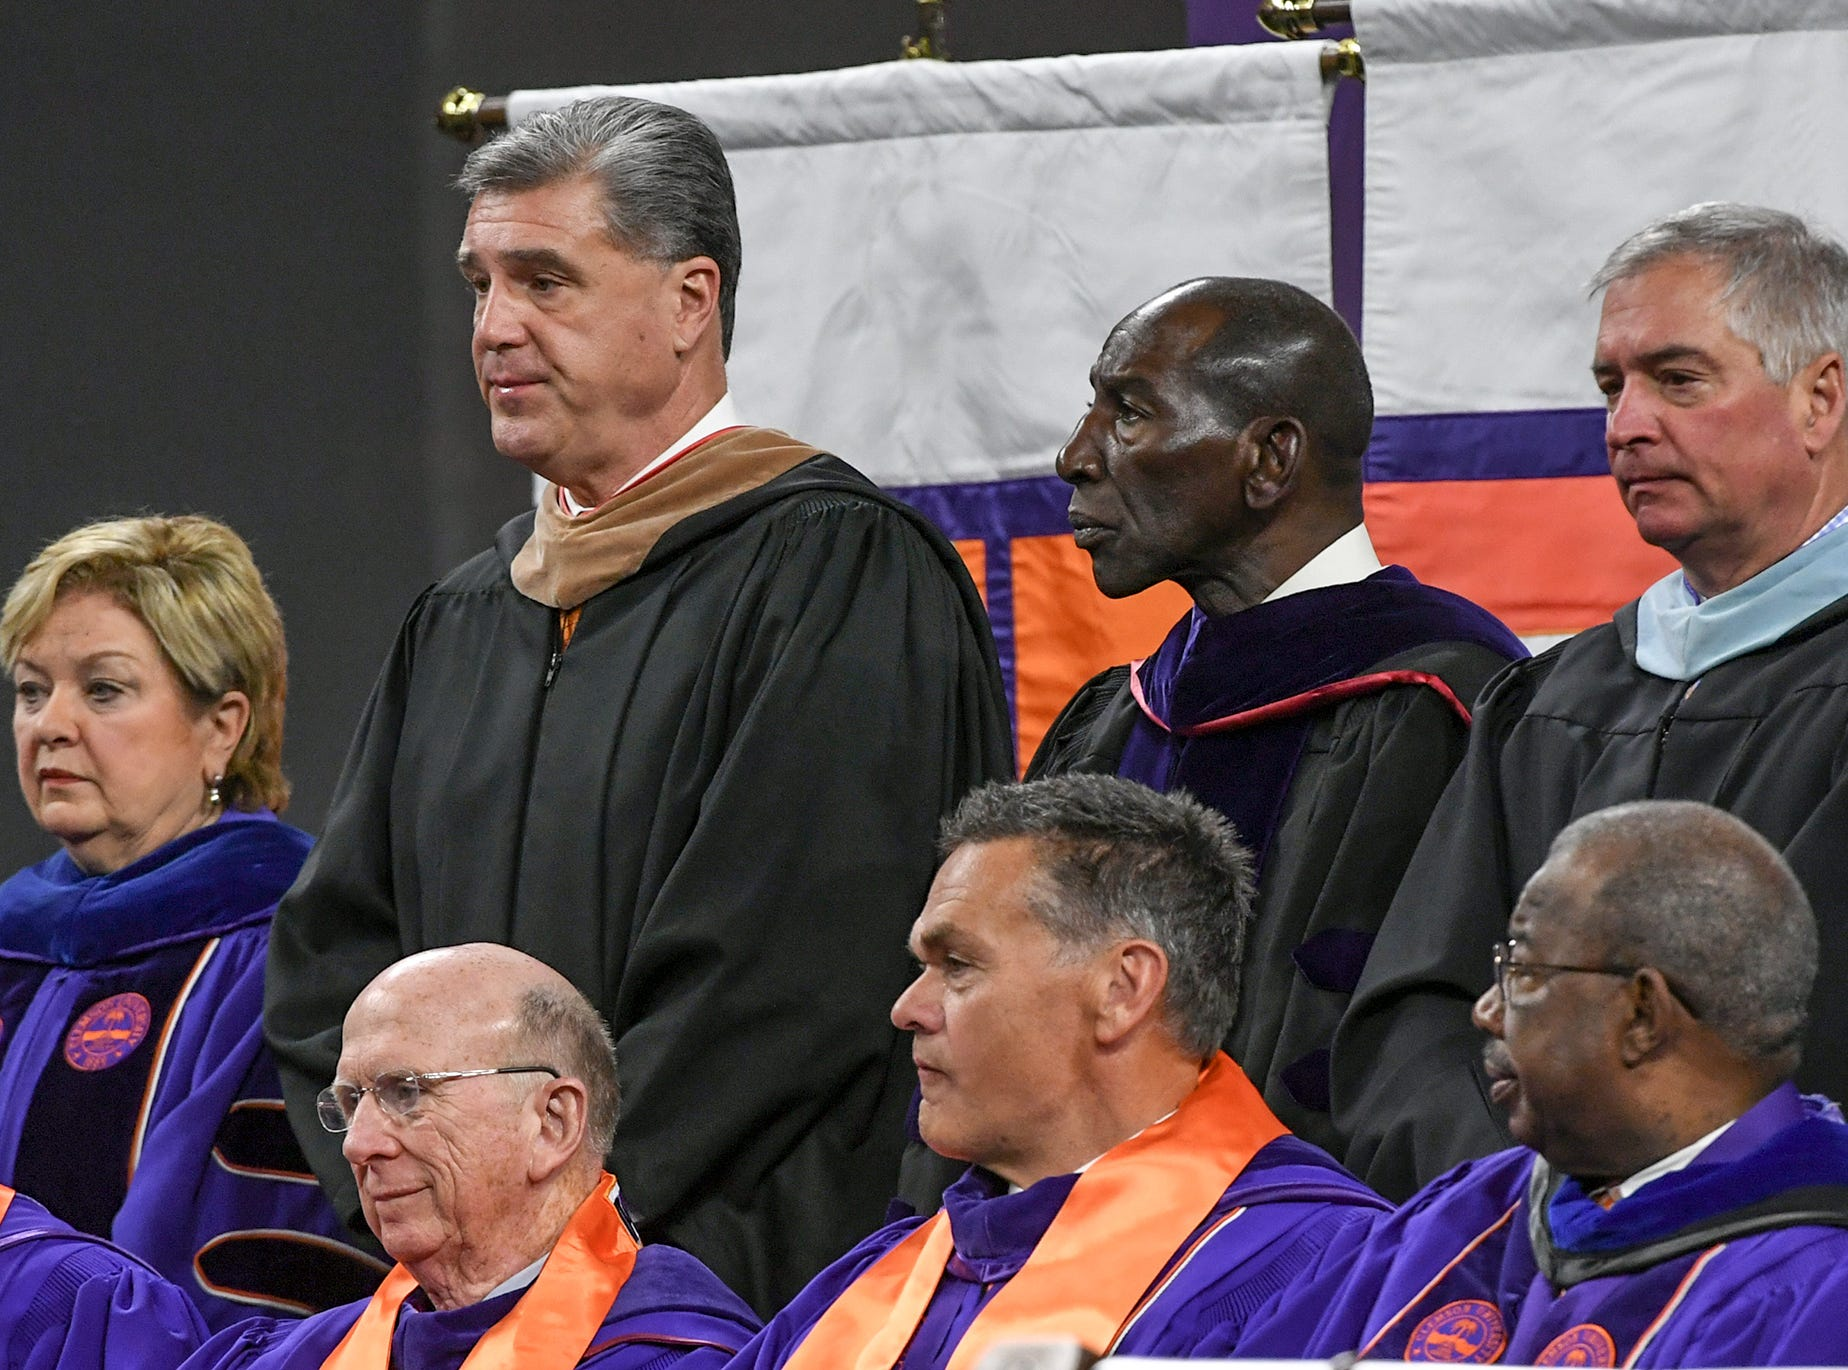 Clemson University Board of Trustees members, front from left; John N. (Nicky) McCarter, Jr., David Wilkins, William C. Smith, Jr., and Louis Lynn, are joined by top row from left; Vice President for Student Affairs Almeda Jacks, Athletic Director Dan Radakovich, Chief Diversity Officer and Special Assistant to the President Lee A. Gill during Clemson University commencement ceremonies in Littlejohn Coliseum in Clemson Friday, May 10, 2019.